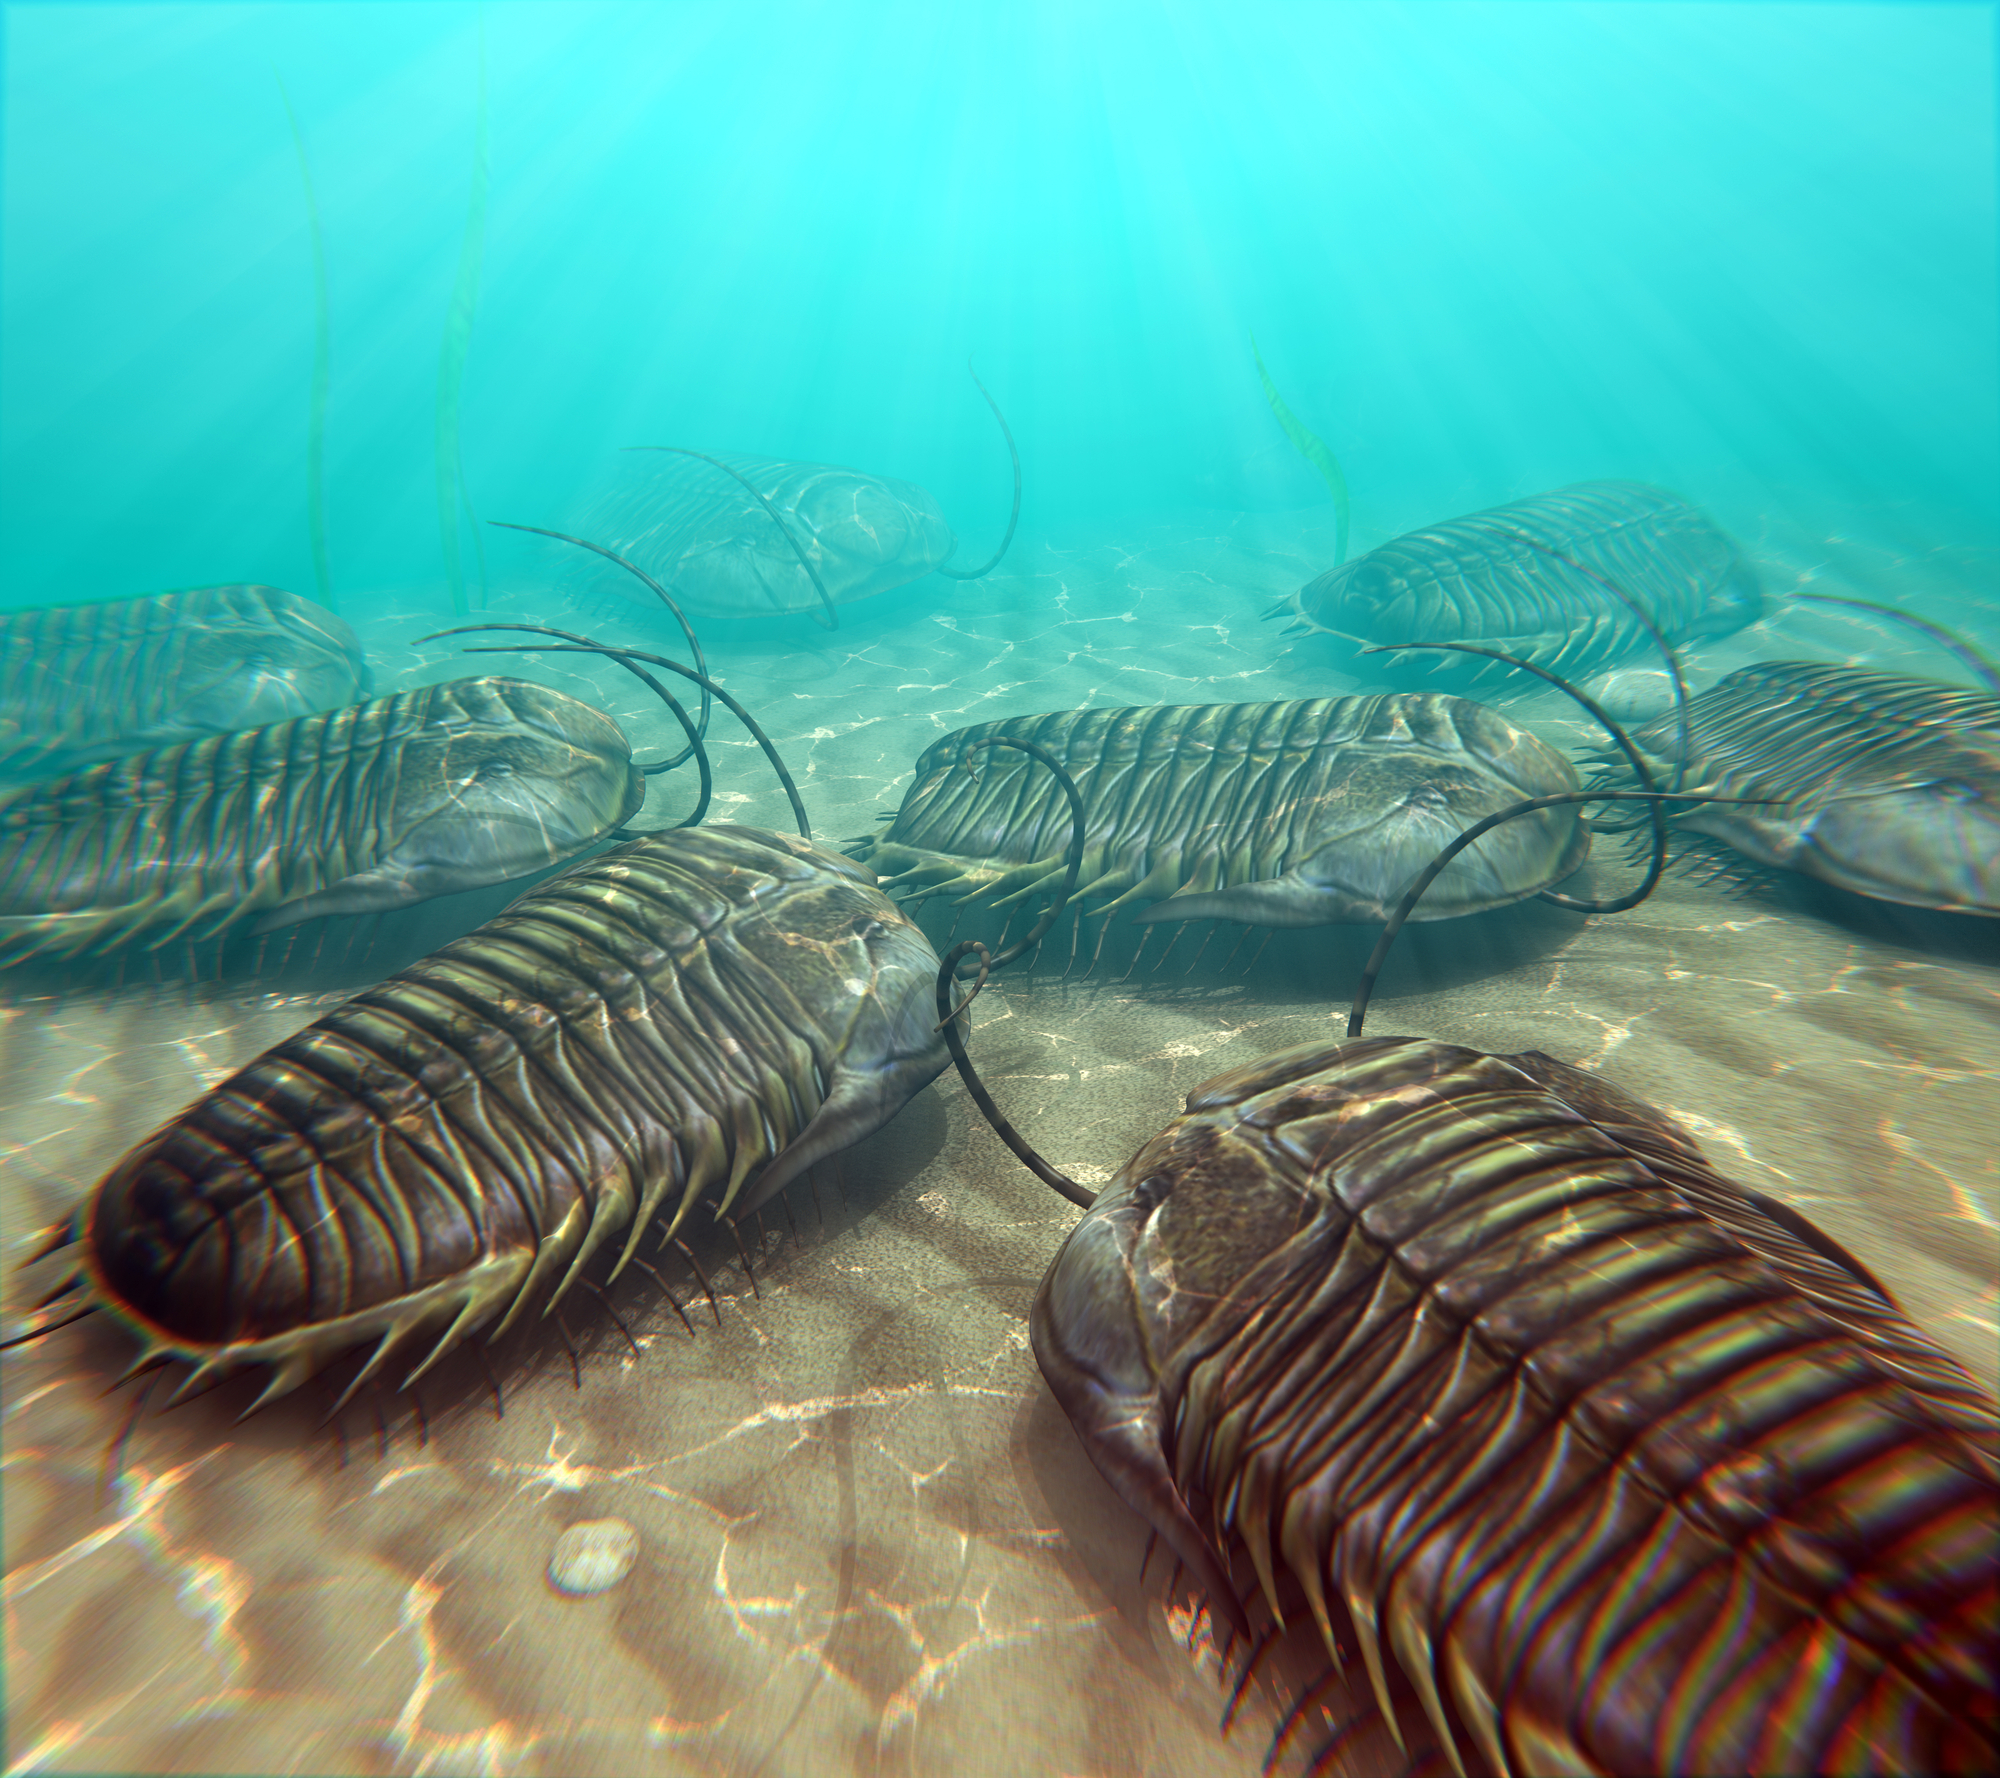 A new study has found that trilobites breathed oxygen through gills on their legs